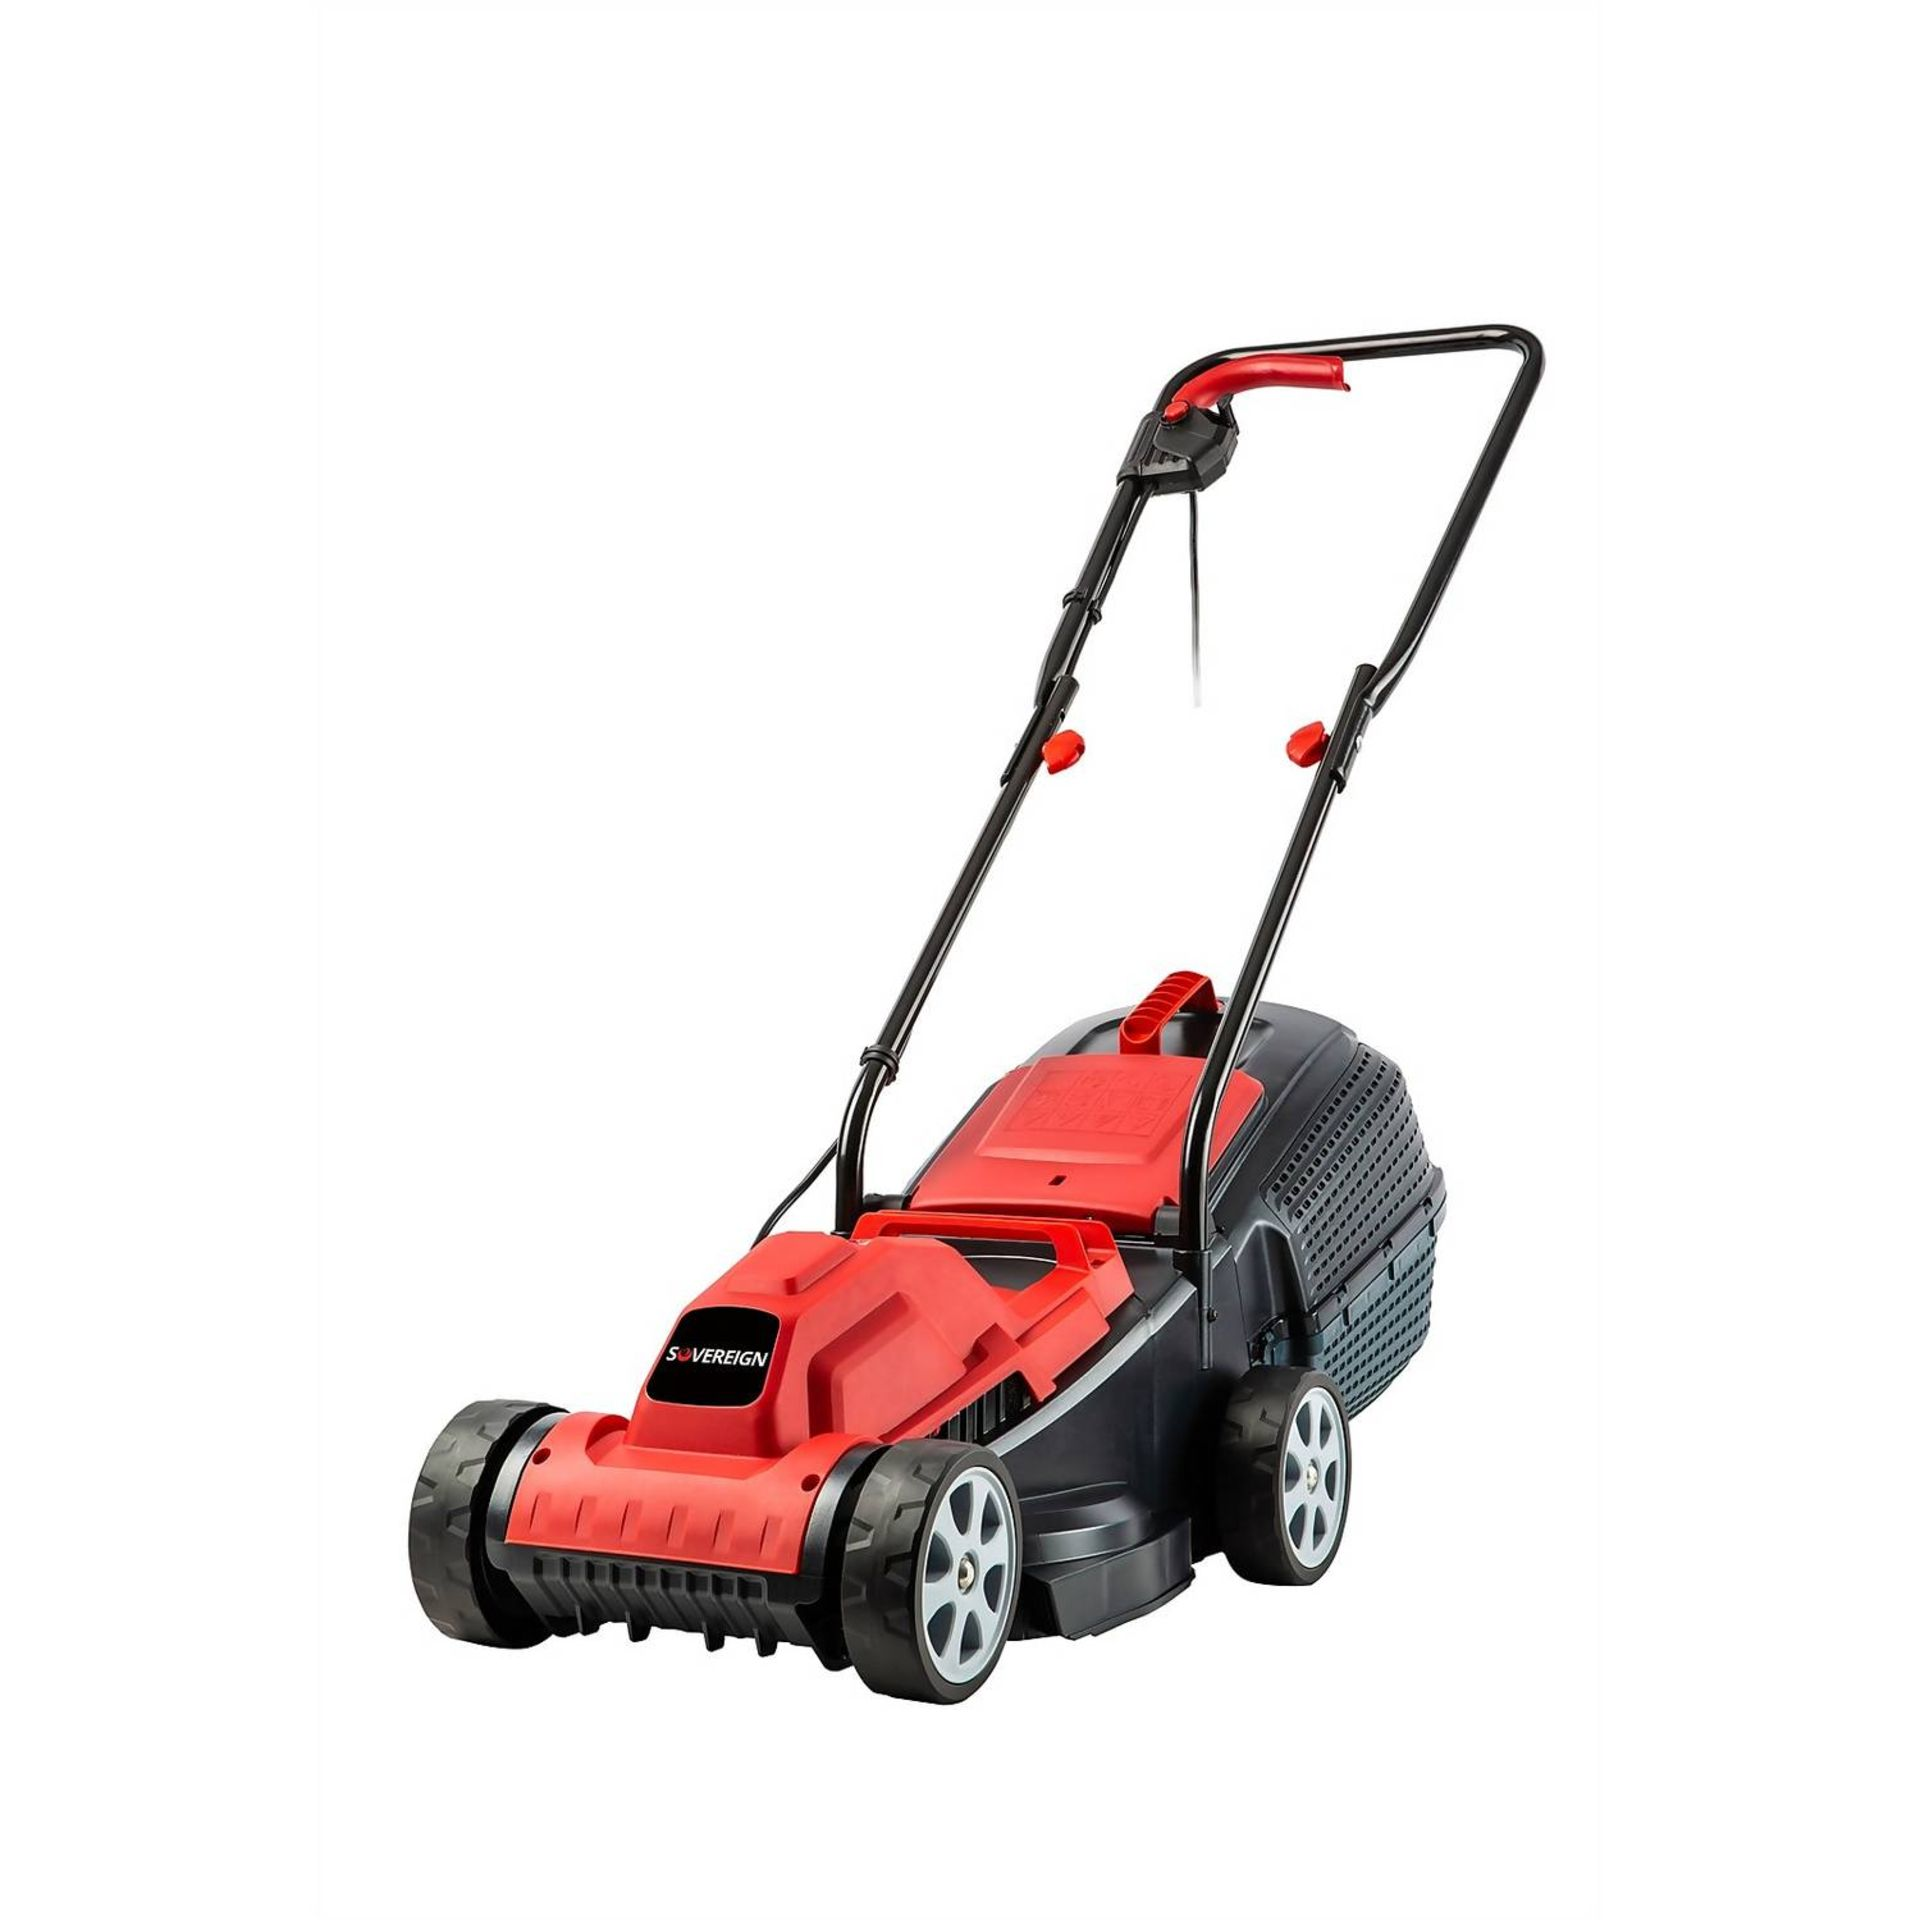 (P6) 1x Sovereign 32cm 1200W Electric Rotary Lawn Mower RRP £50. New, Sealed Unit, With Box Damage.